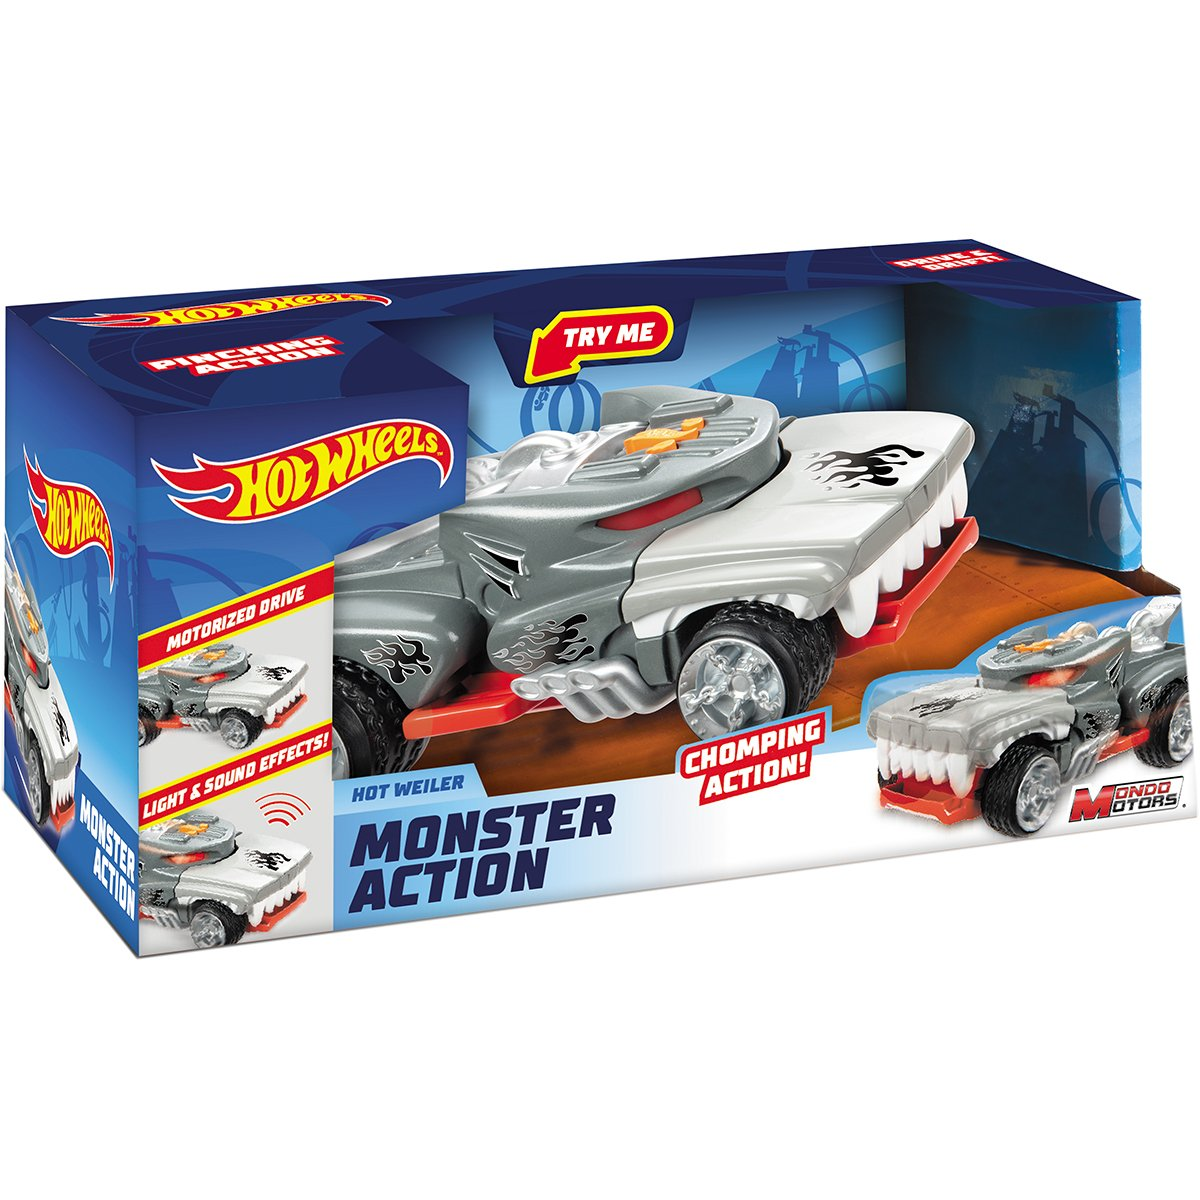 Masinuta cu lumini si sunete Hot Wheels, Monster Action, Hot Weiler